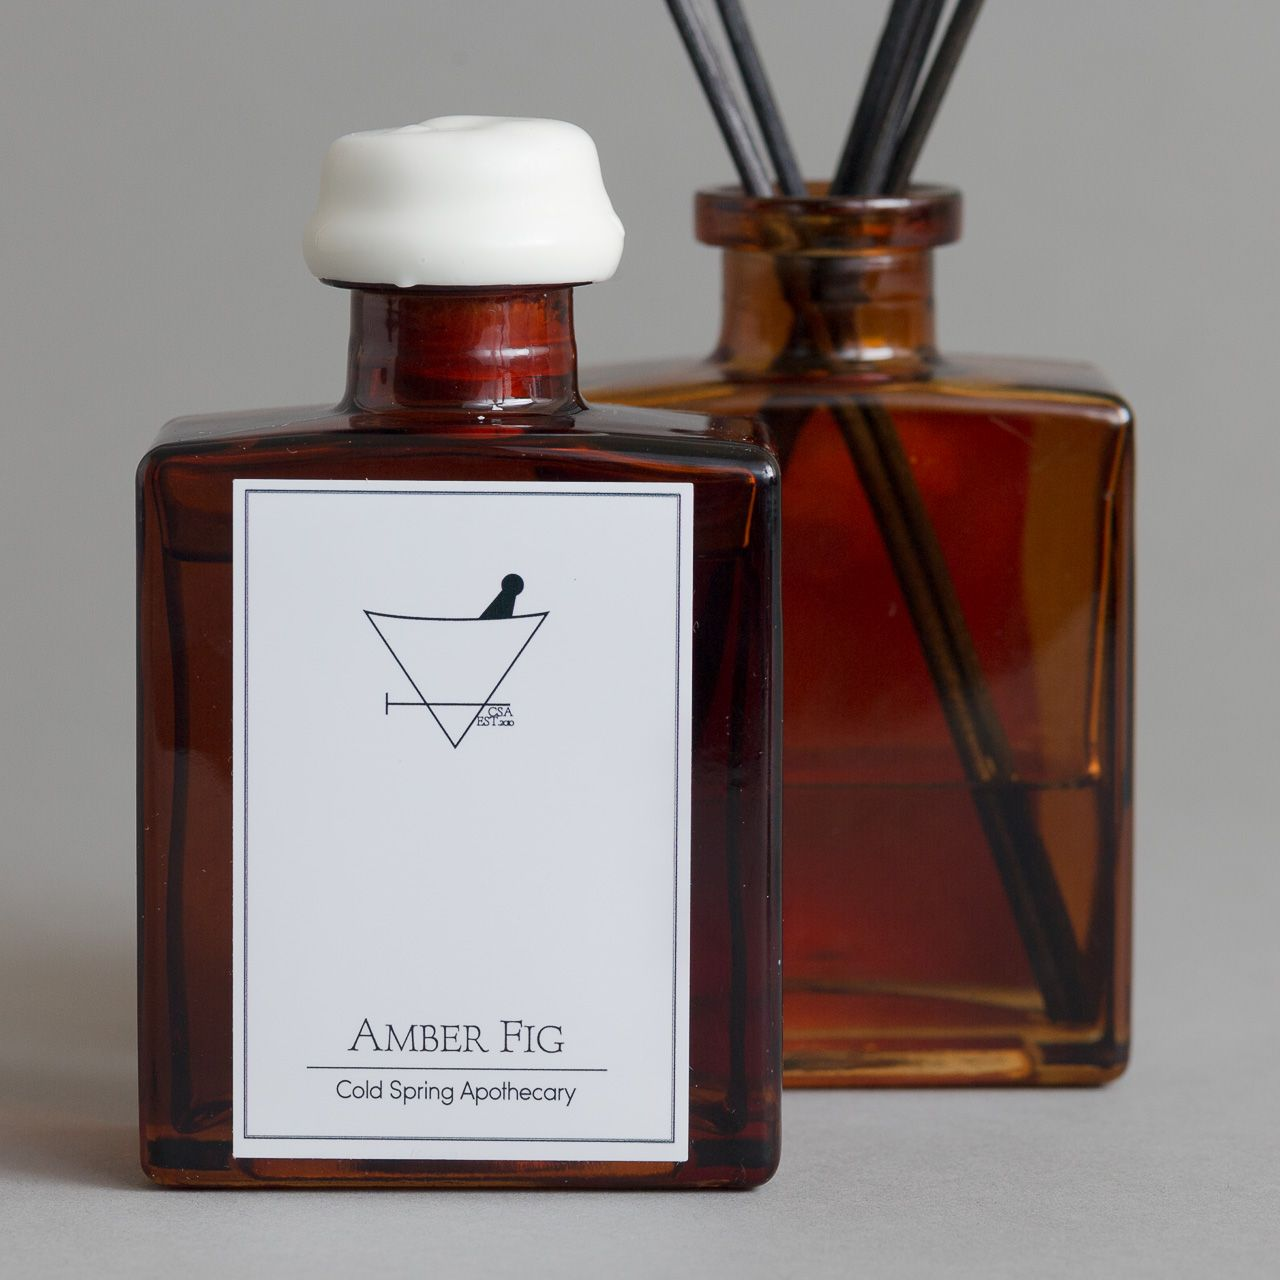 Amber Fig Reed Diffuser 5oz. Cold Spring Apothecary